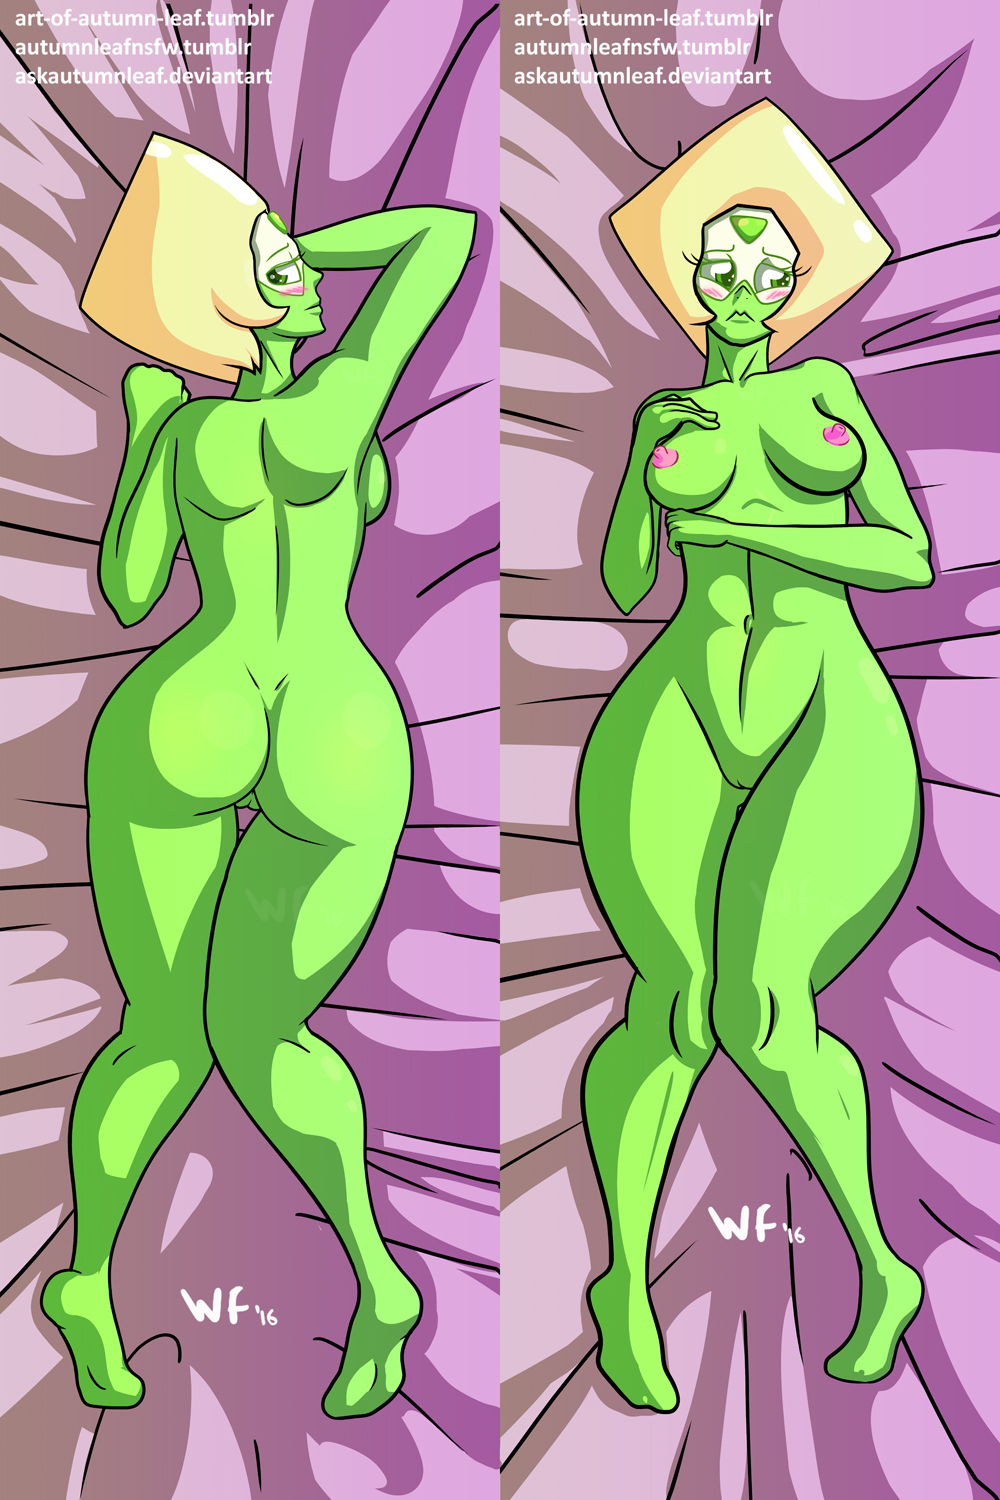 steven steven peridot universe x How to draw a realistic penis